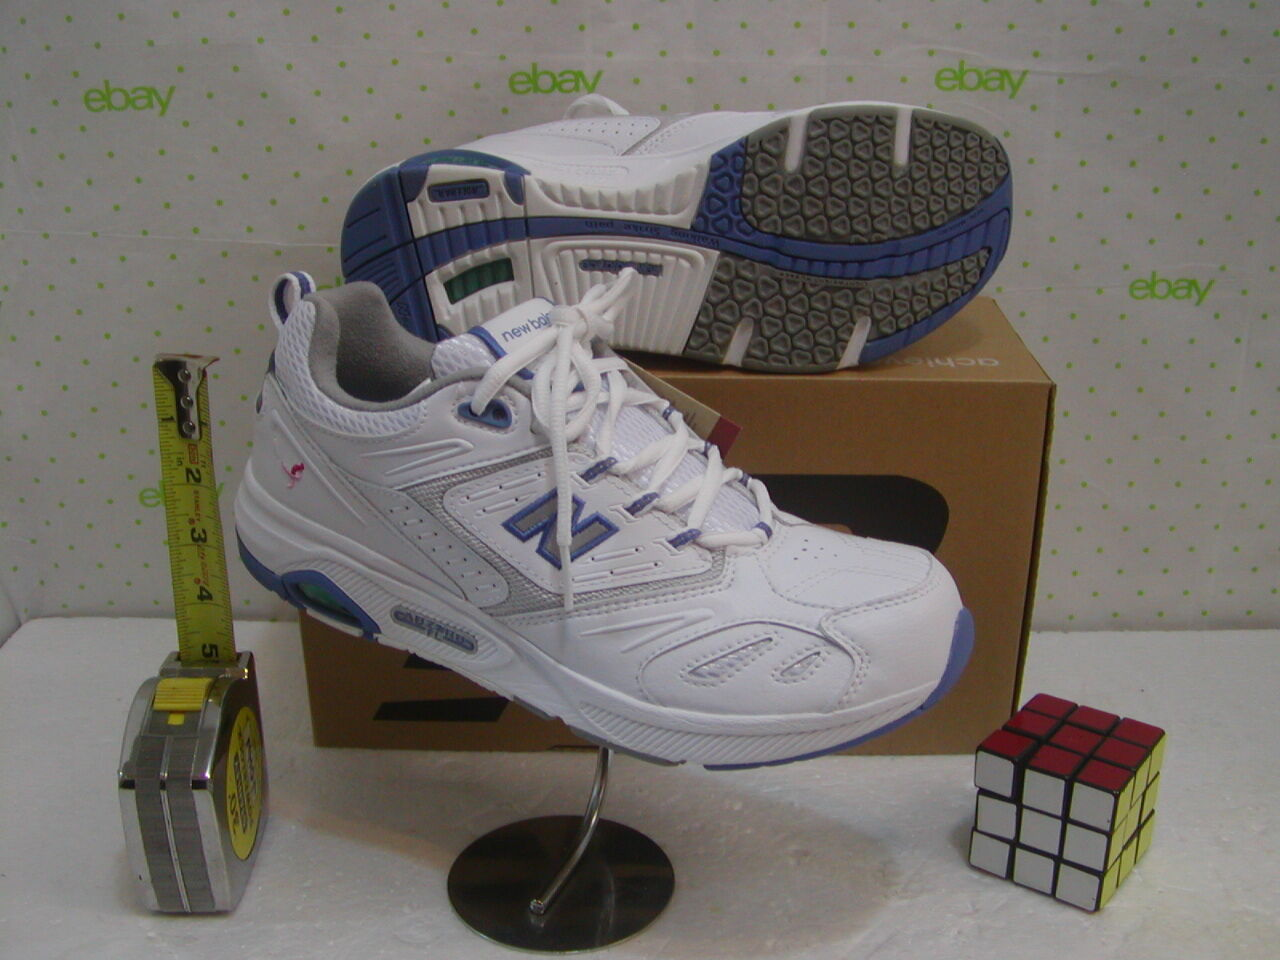 WW845WB New Balance womens' durable, comfort quality, athletic walking shoe